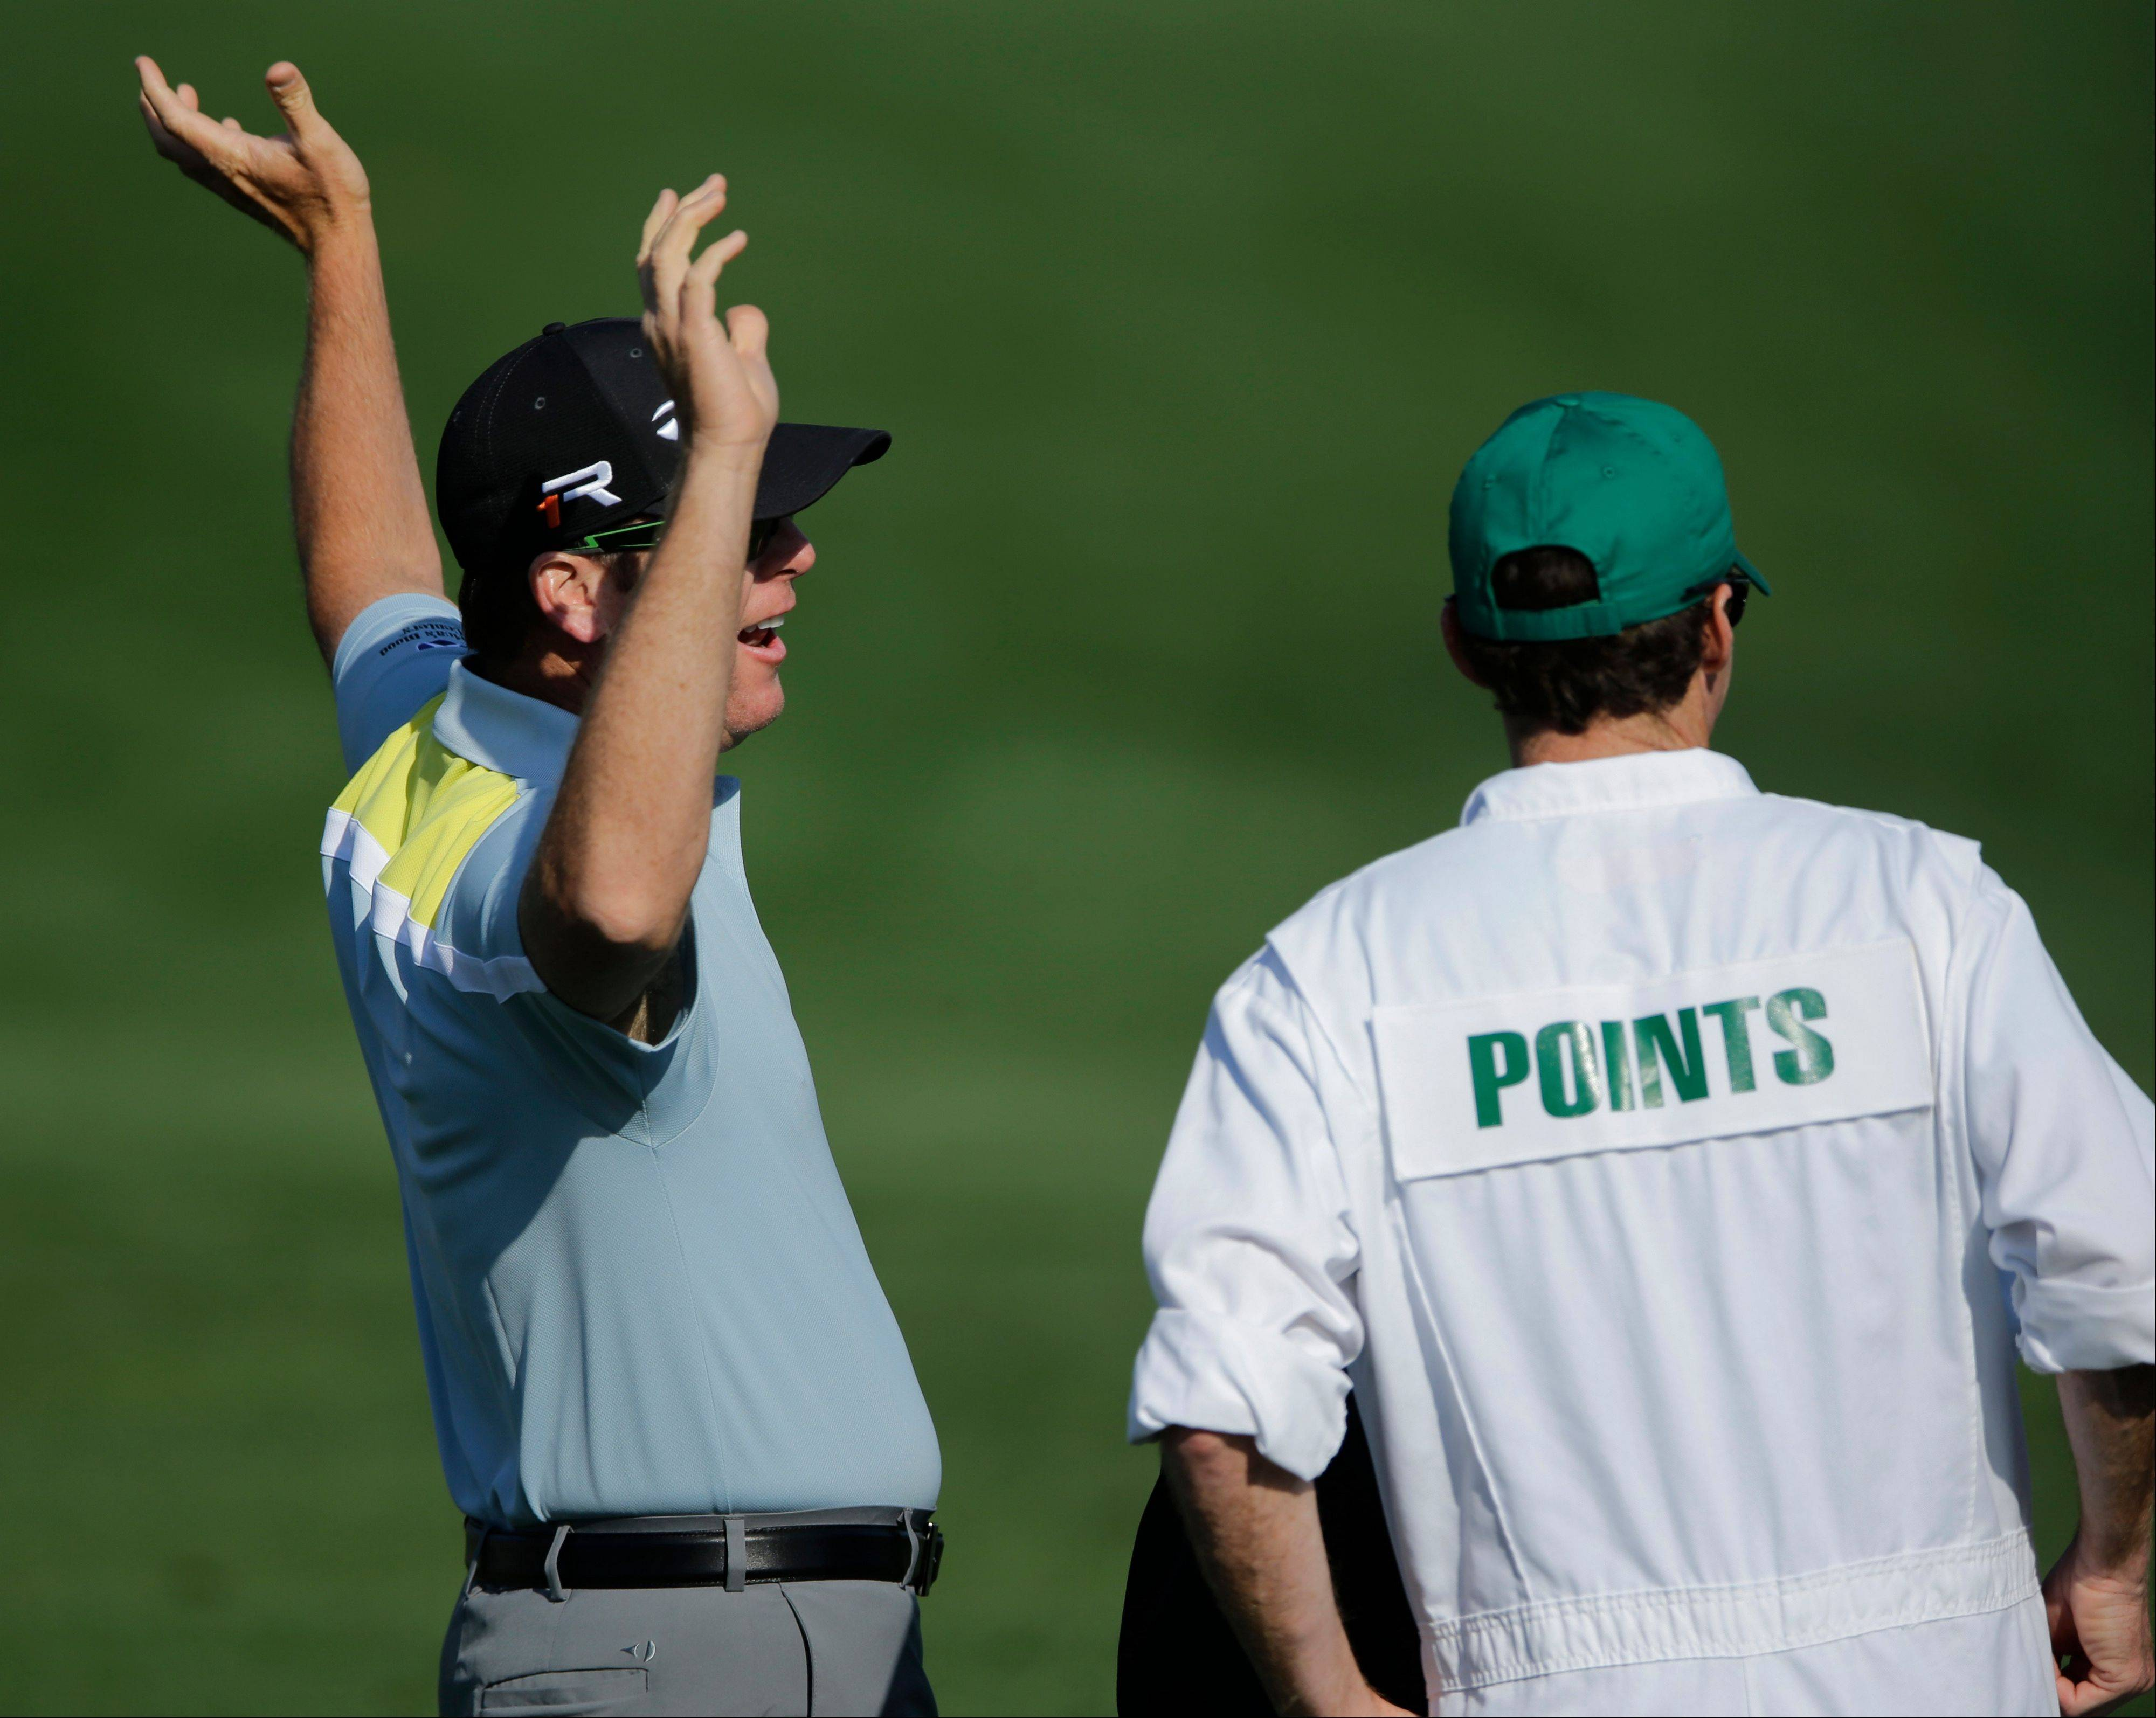 D.A. Points stretches while speaking with his caddie Travis Perkins on the driving range during a practice round for the Masters in Augusta, Ga. Points is making his second appearance in the Masters.